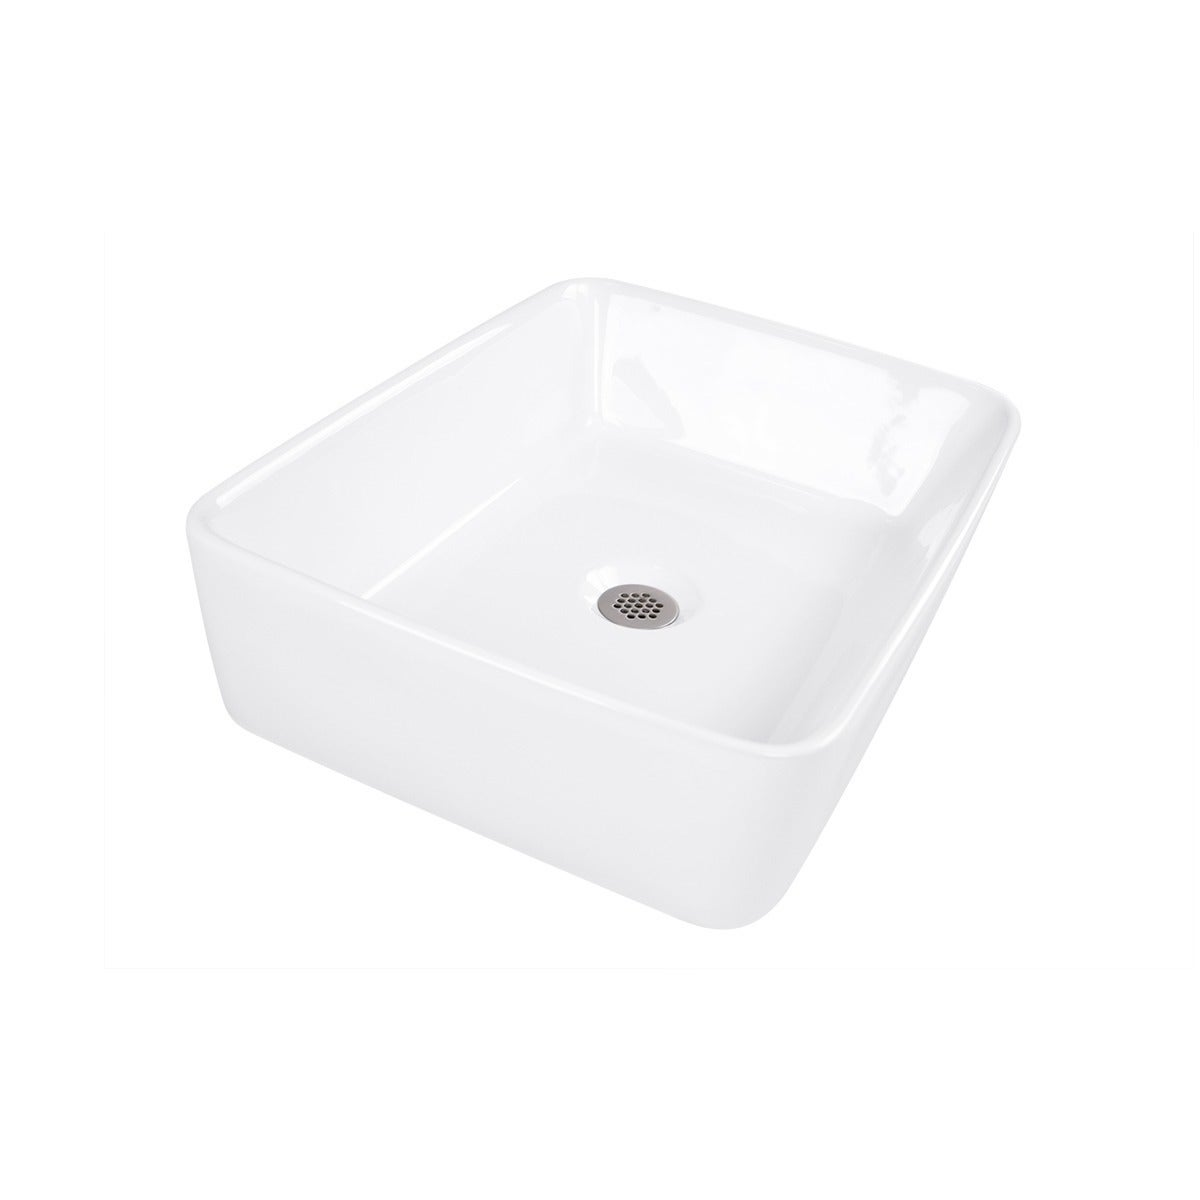 Merveilleux Shop Highpoint Collection 19 Inch White Rectangular Bathroom Vessel Sink  Without Overflow   Free Shipping Today   Overstock.com   8300611